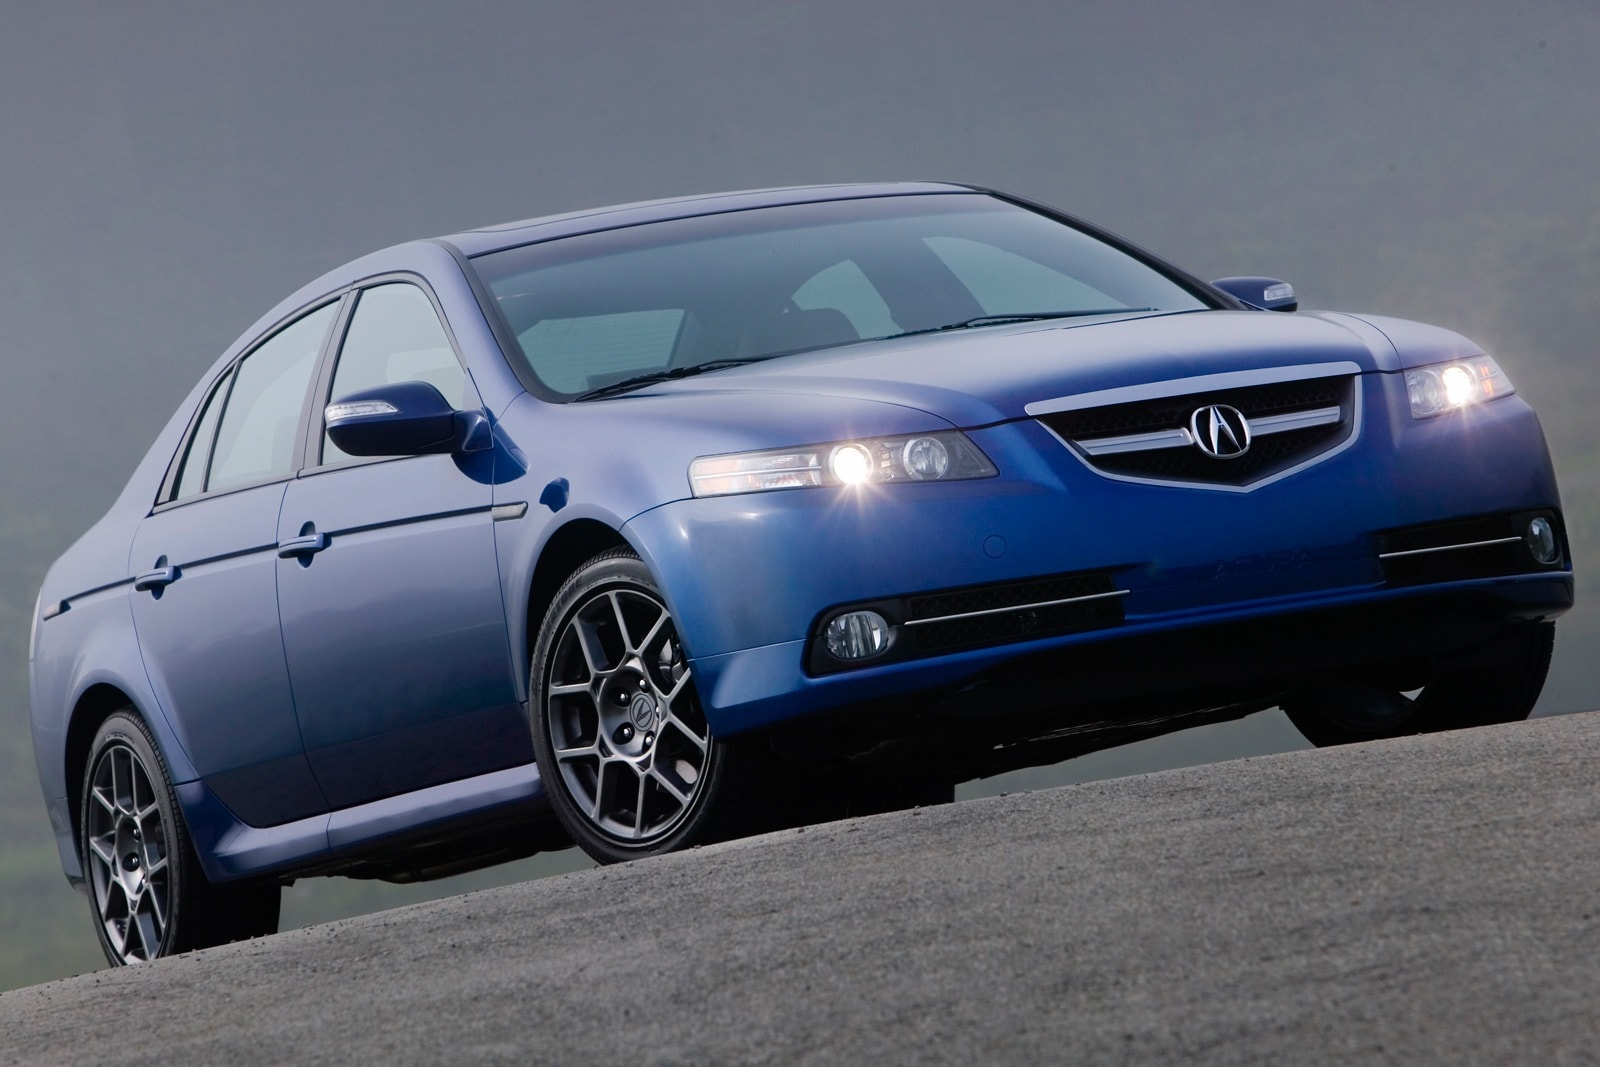 2008 acura tl review ratings edmunds